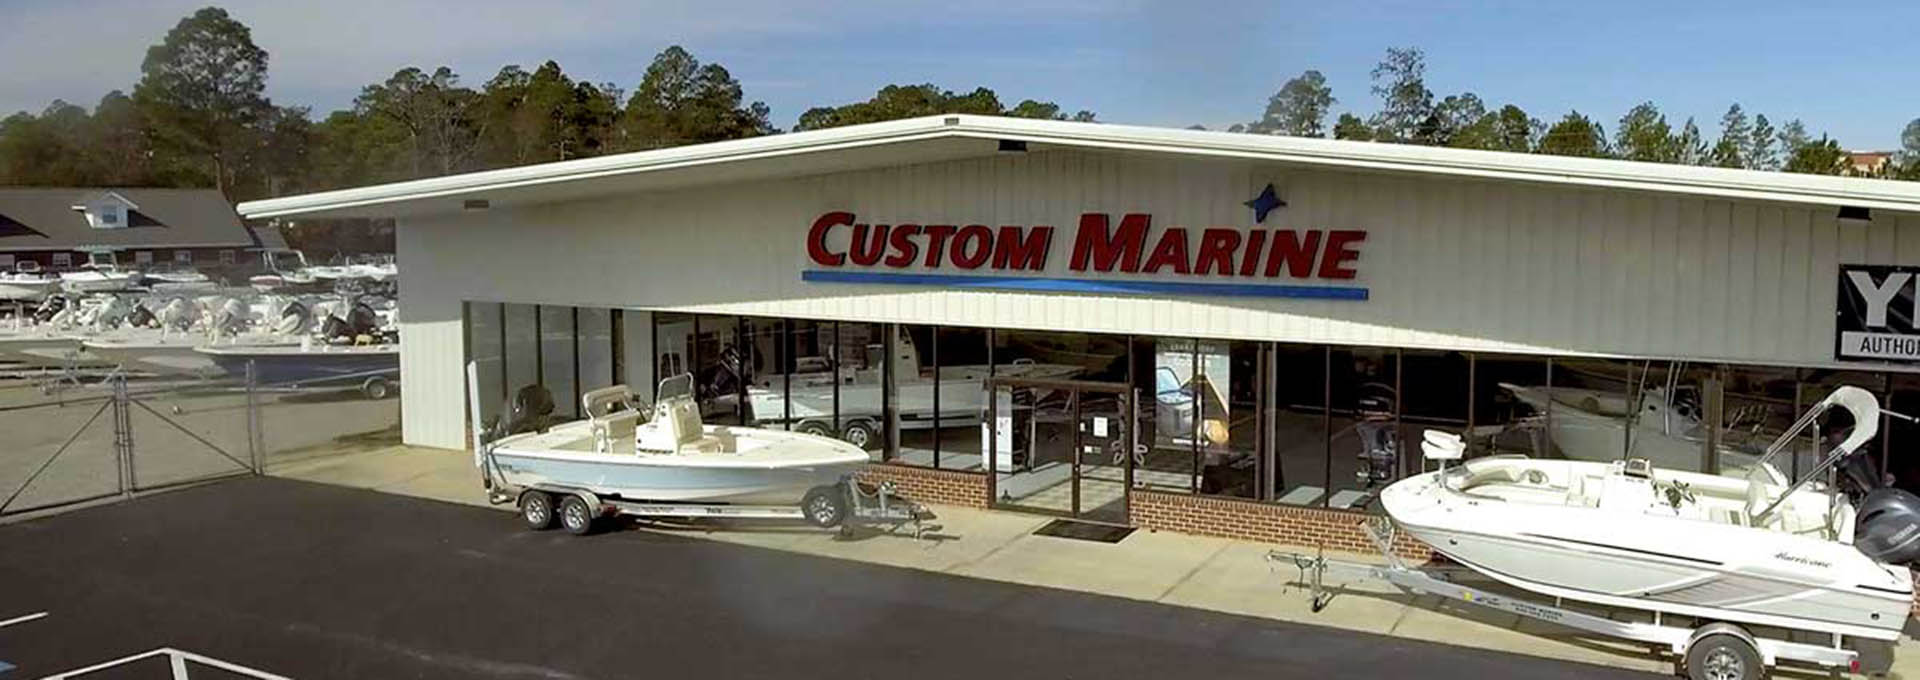 Store front image for the dealership located at Statesboro, GA